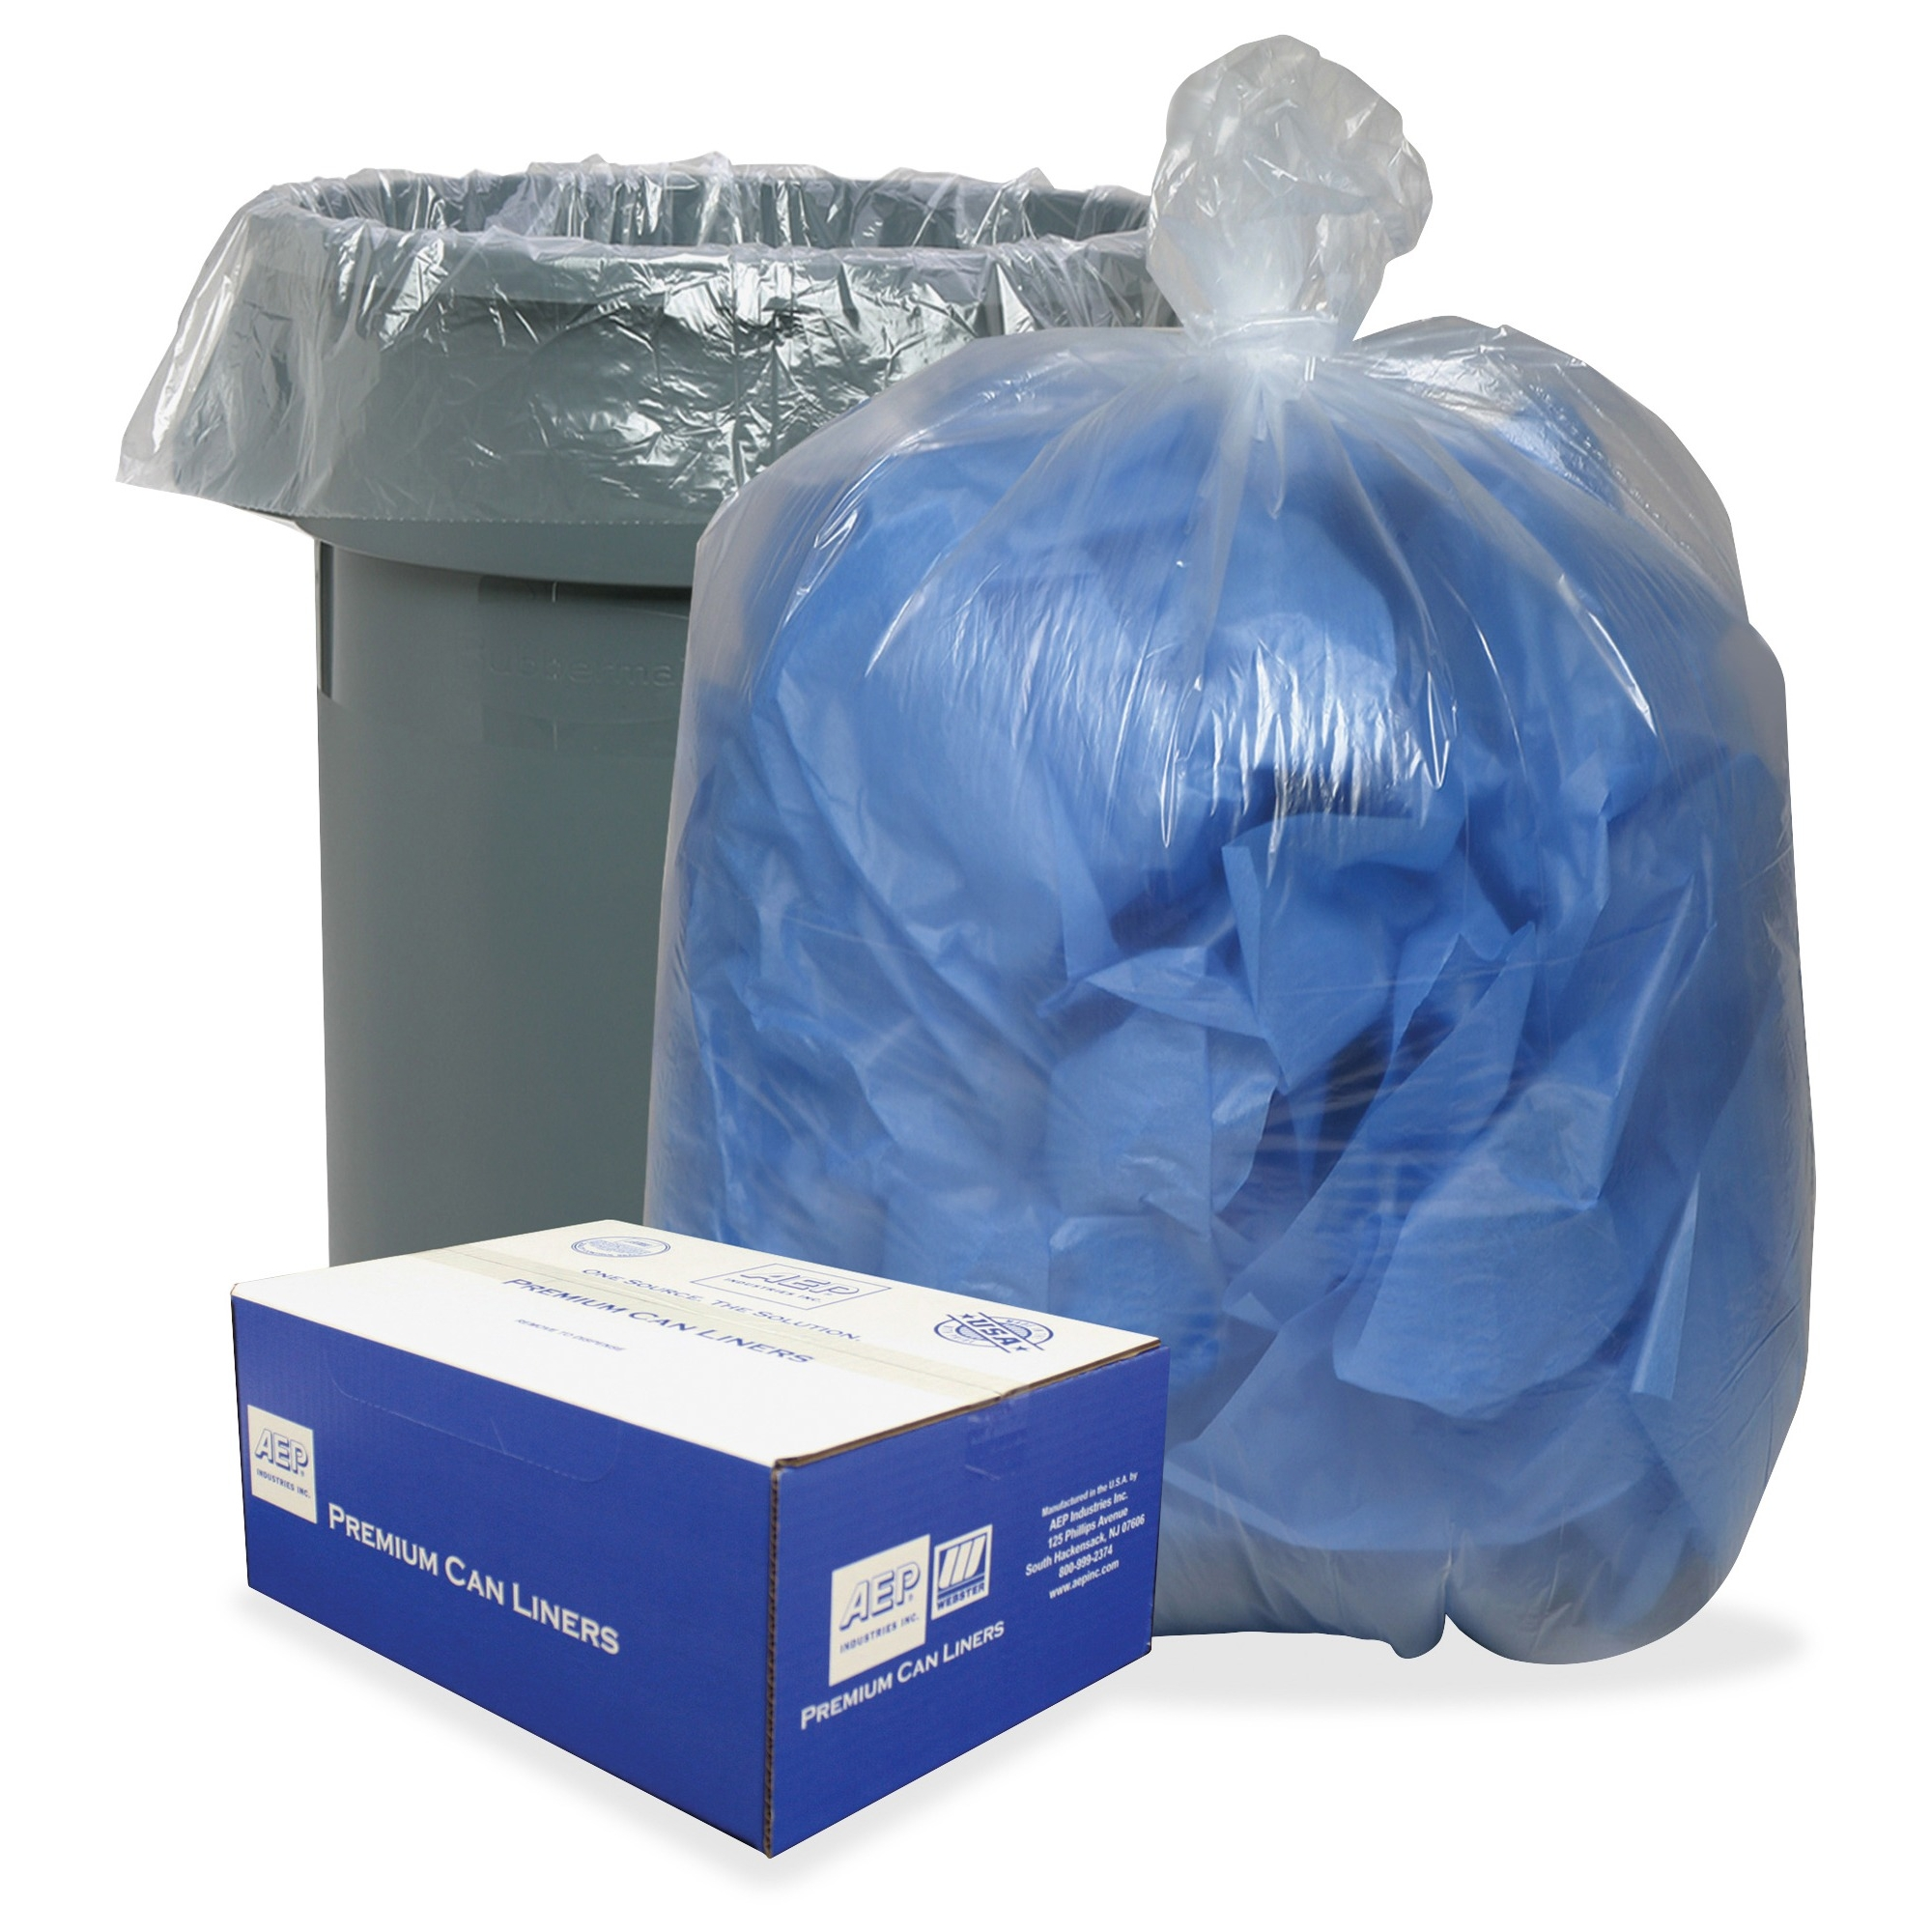 """Webster 0.8 Mil Heavy-duty Low-density Liners - 60 Gal - 38"""" X 58"""" - 0.80 Mil [20 Micron] Thickness - Low Density - 100/carton - Clear, Translucent (385822c)"""